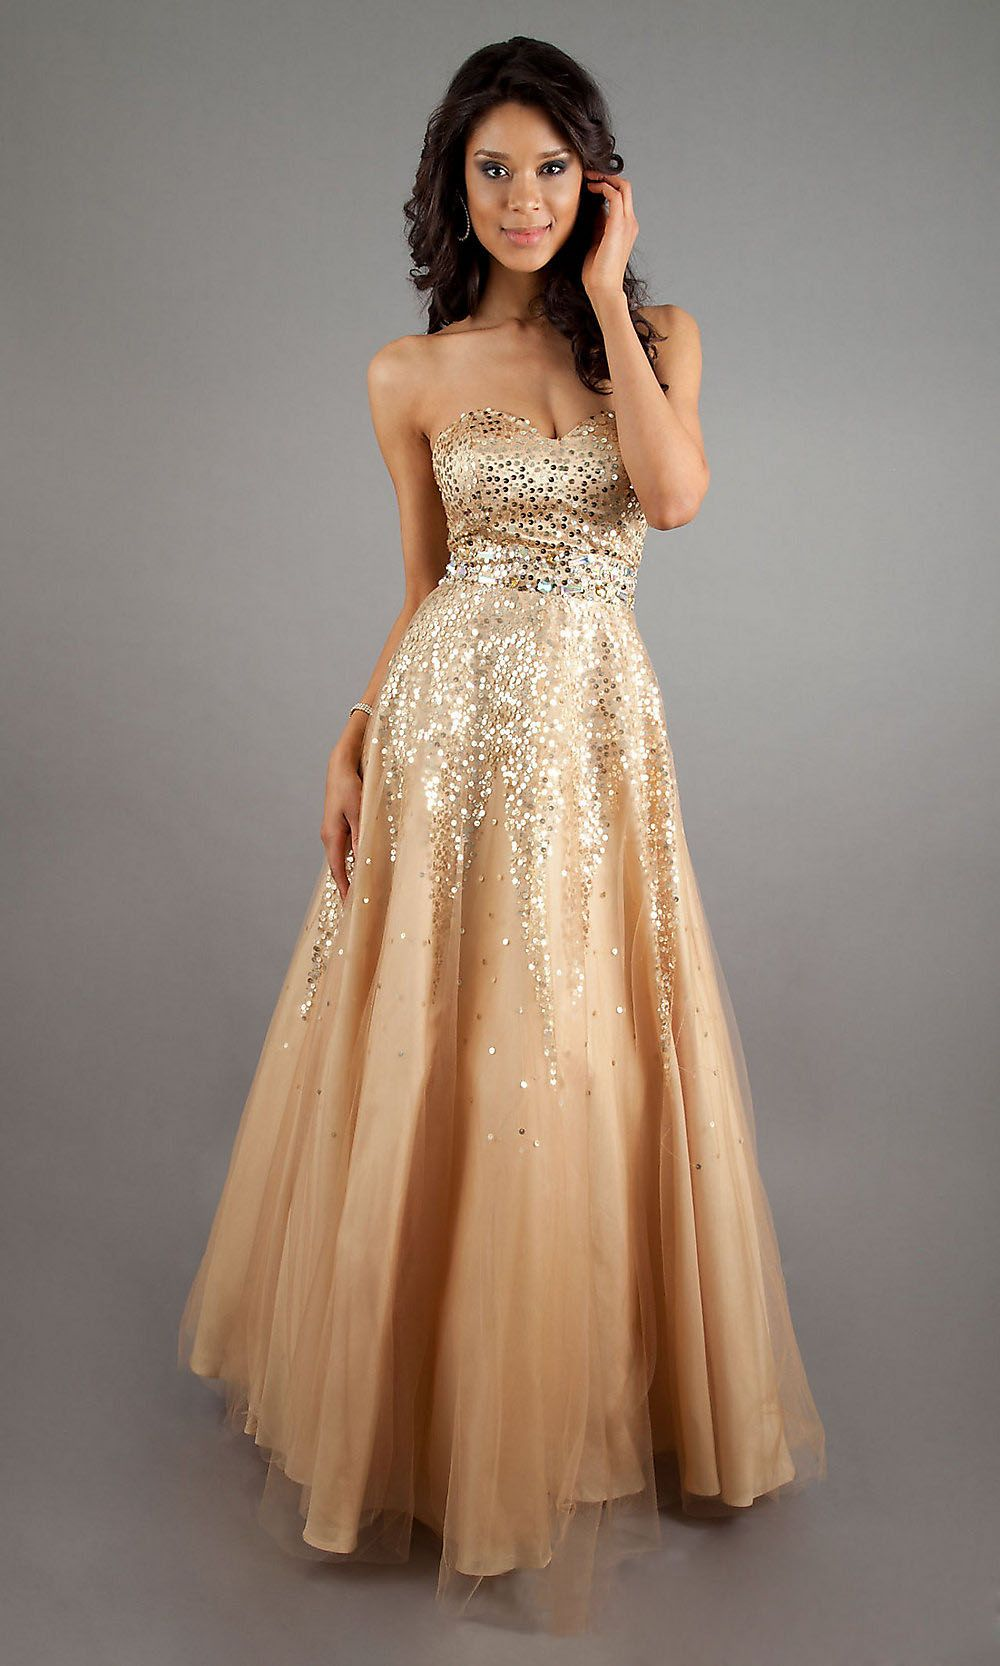 gold-prom-dress- | Aesthetic Gold Formal Dresses For The Beautiful ...